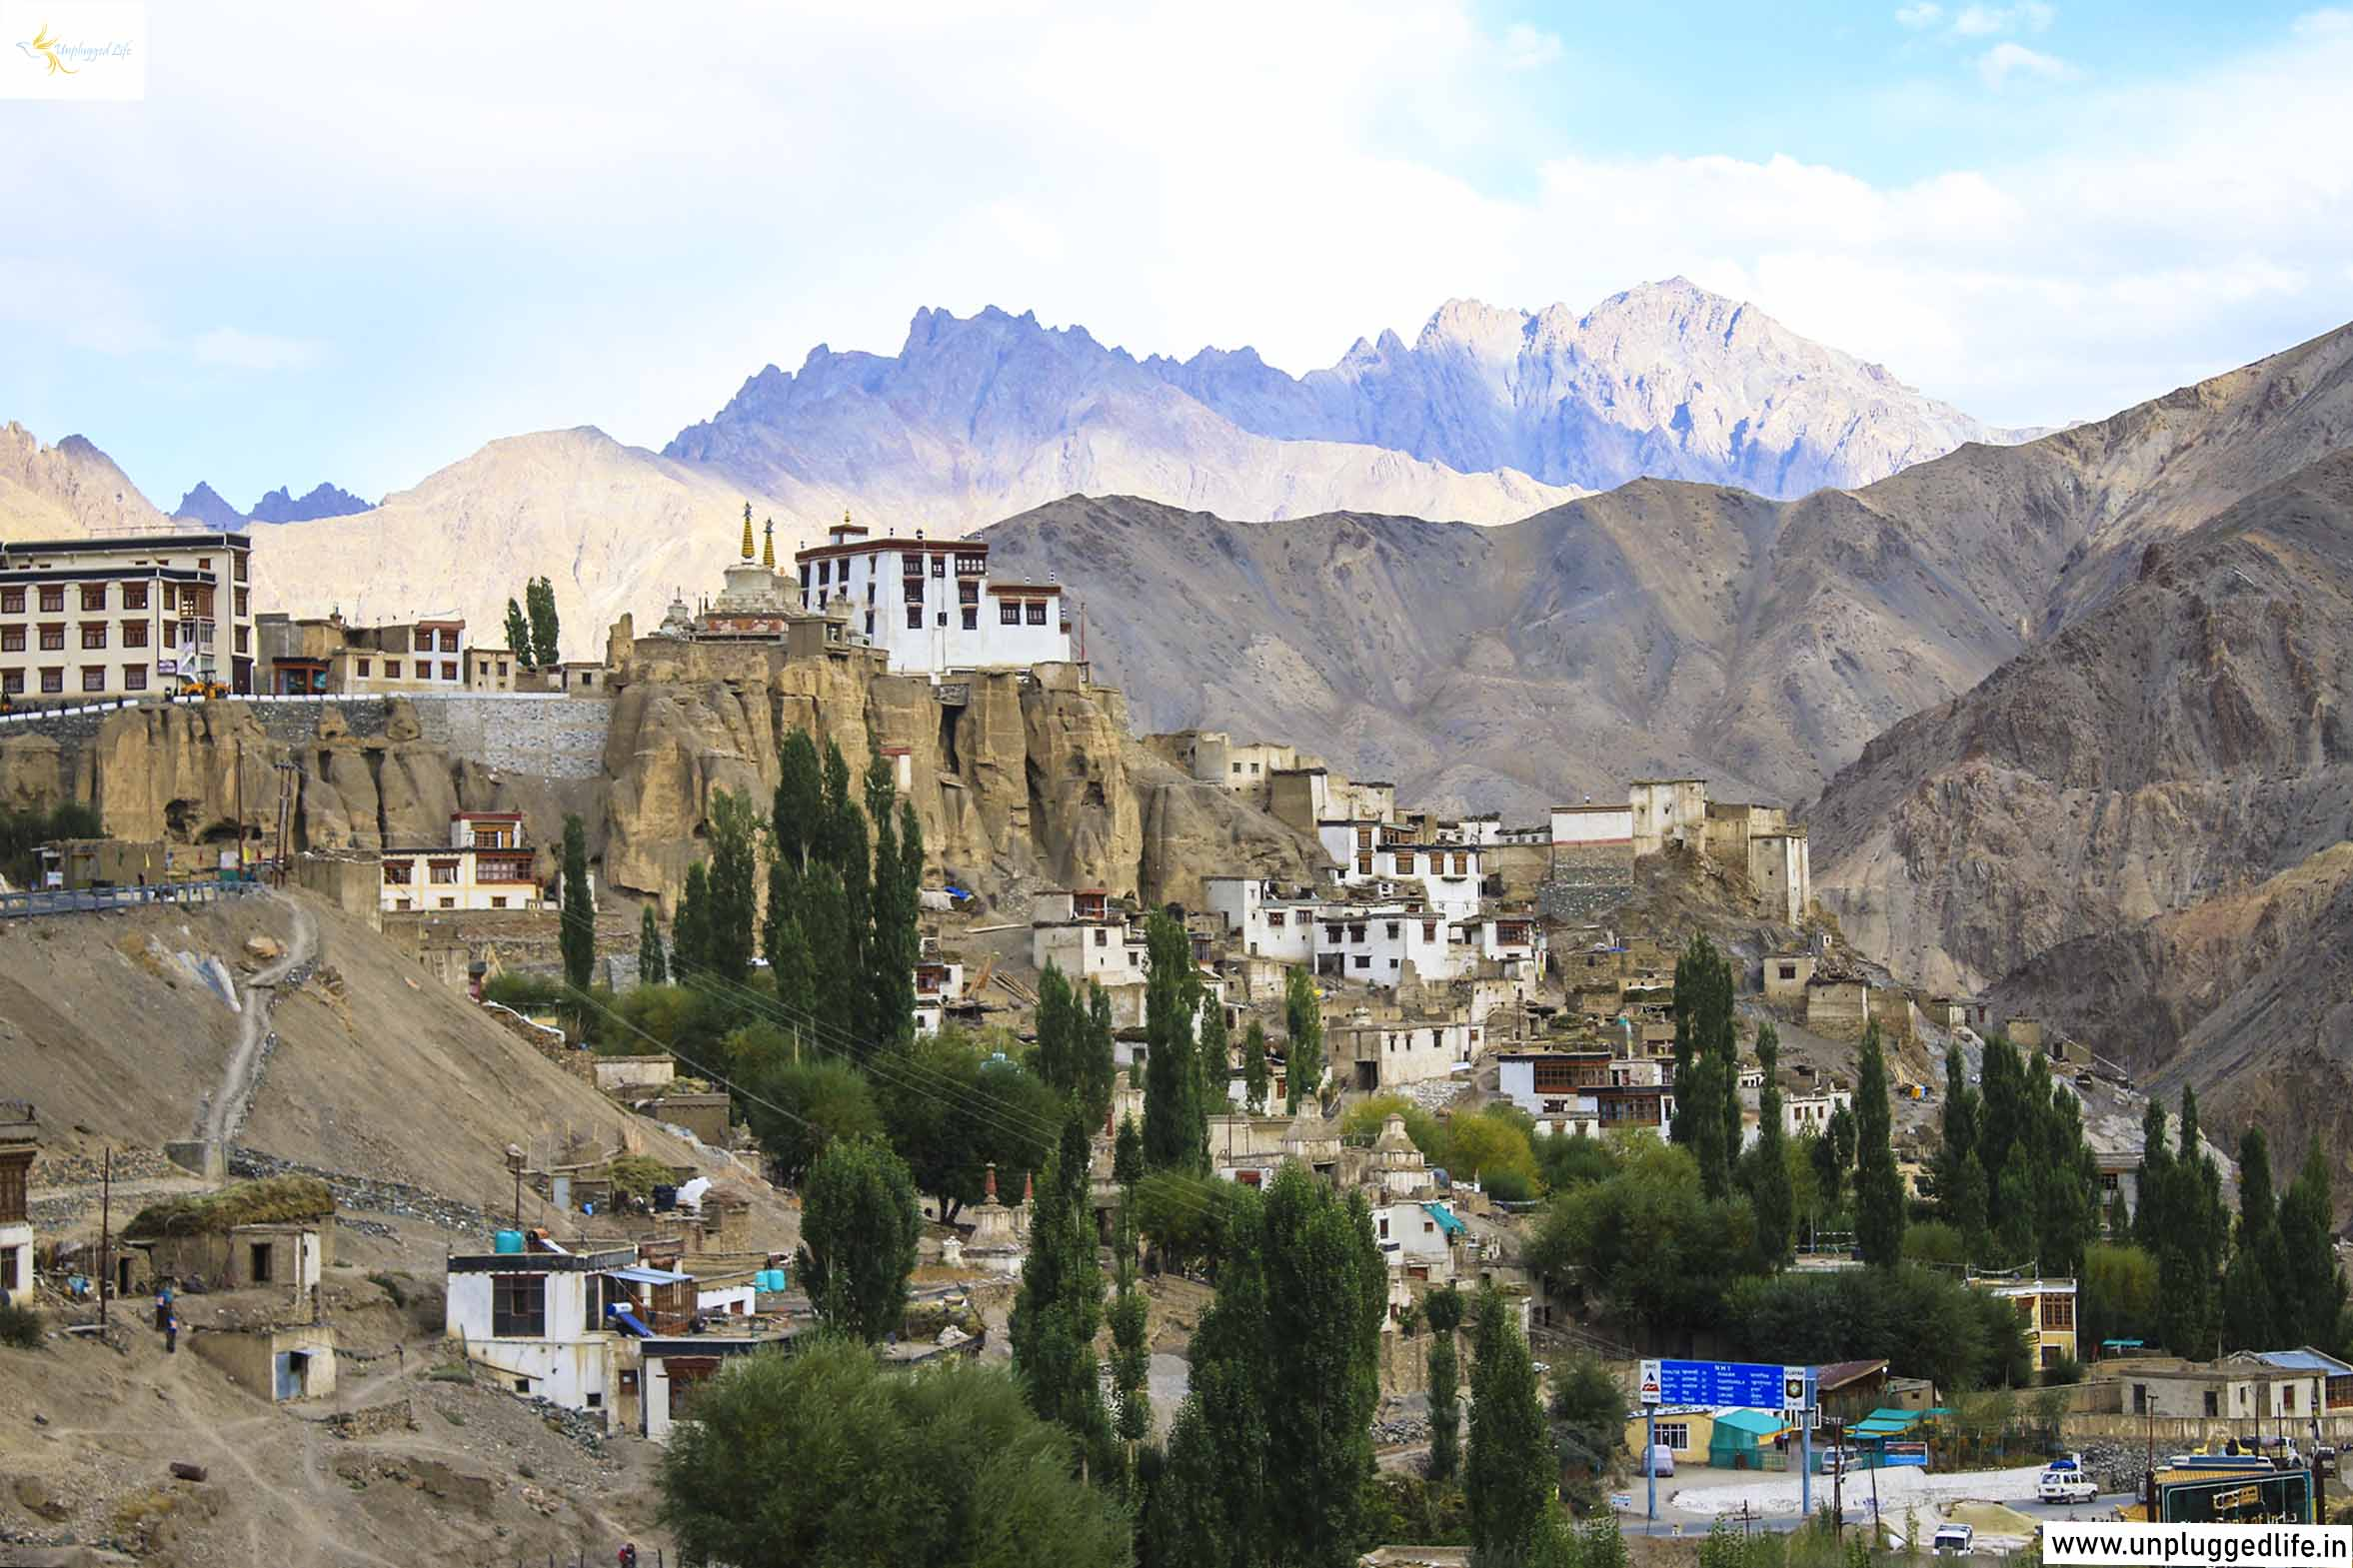 Lamayuru, Moonland, Moonland in Lamayuru, Moonland in Ladakh, Lamayuru Monastery, Monastery in Ladakh, Landscape in Ladakh, Landscape, Mountains, Explore Lamayuru, Things to do in Lamayuru, Places to visit in Lamayuru, Monastery in Lamayuru, Lamayuru Monastery in Ladakh, Ladakh, Unplugged Life, Srinagar to Leh, Srinagar to Leh by Road, Srinagar to Kargil by Road, Kargil to Leh by Road, Leh to Srinagar highway, Srinagar to Lamayuru, Srinagar to Leh Ladakh, Landscape in Ladakh, Landscape, Mountains